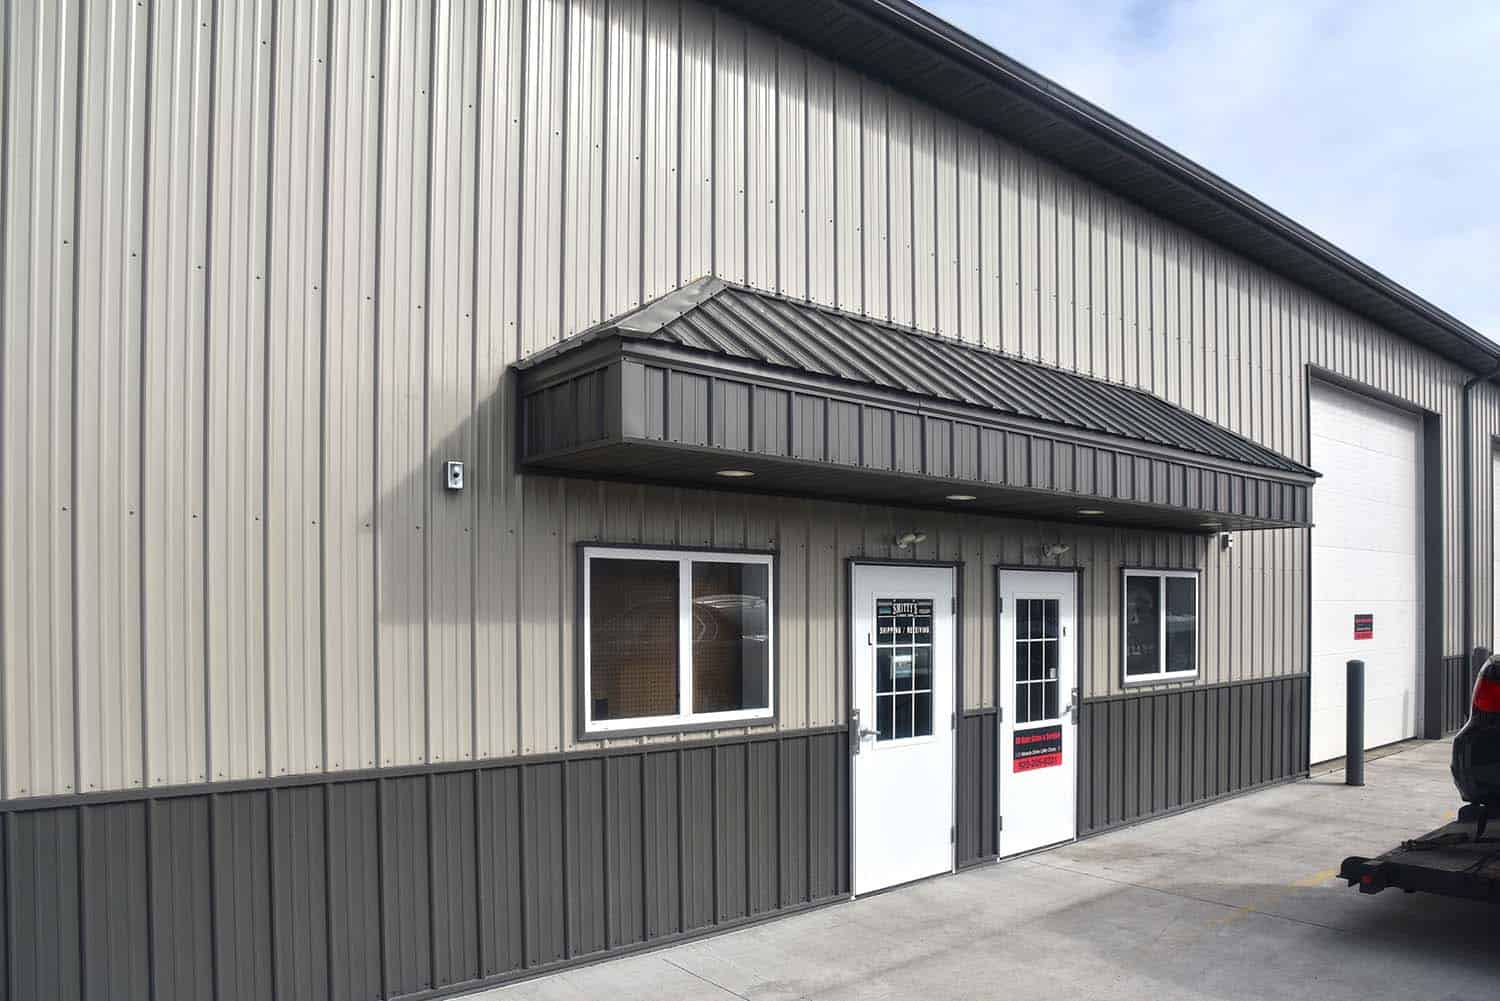 close up view of the exterior awnings over doors and windows at Little Chute Storage facility in Little Chute, WI